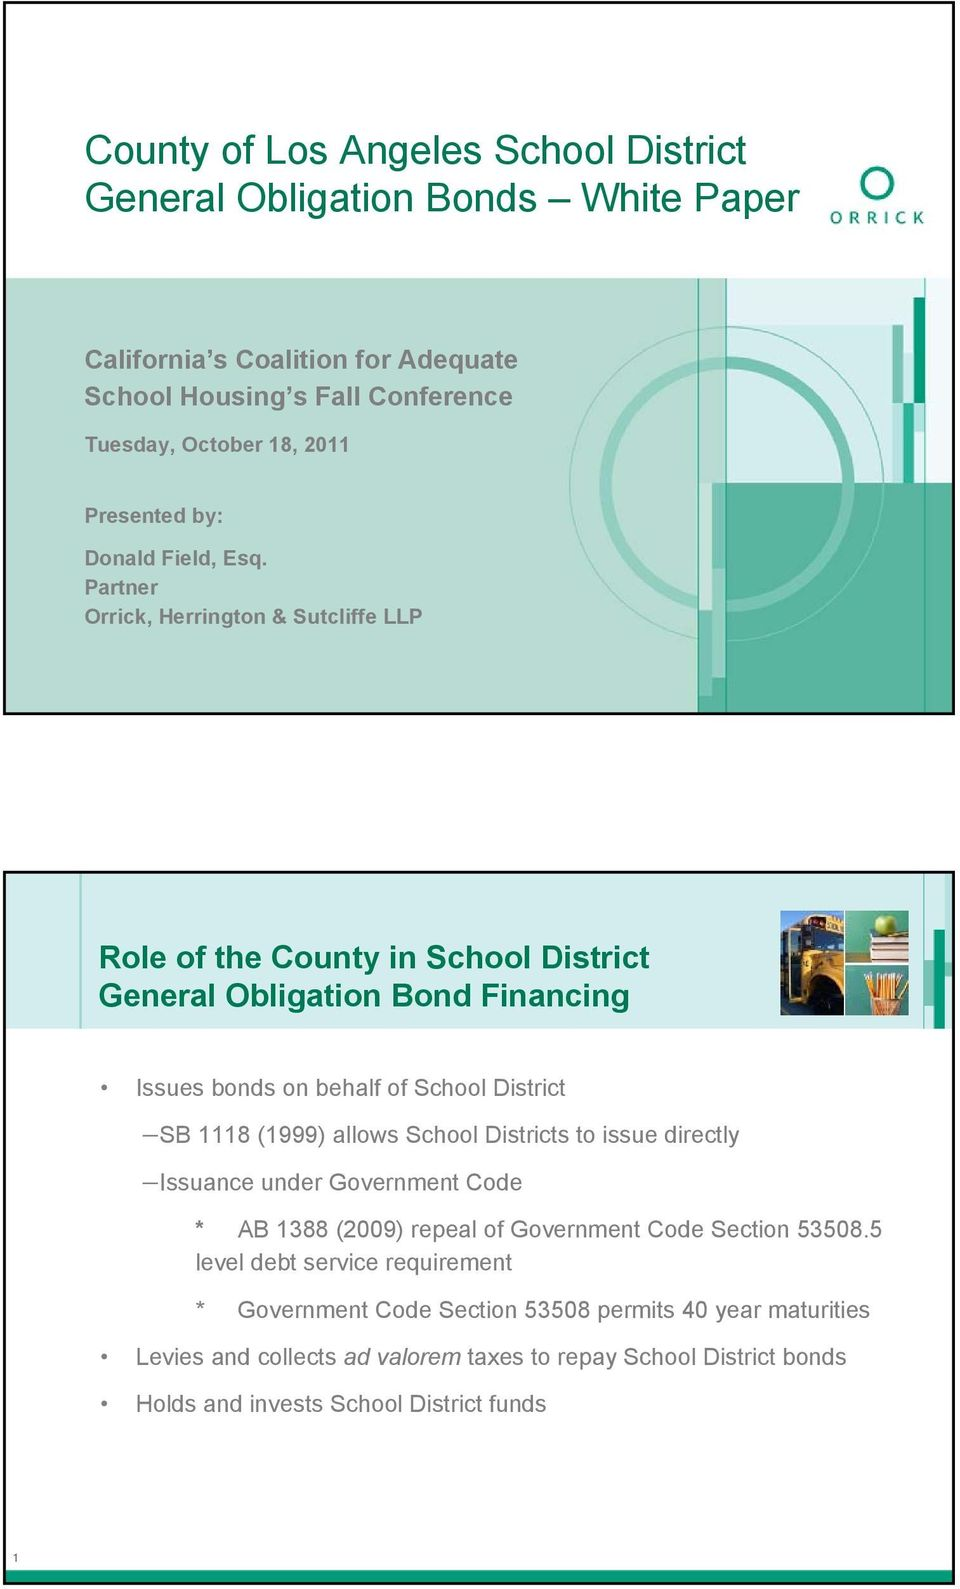 Partner Orrick, Herrington & Sutcliffe LLP Role of the County in School District General Obligation Bond Financing Issues bonds on behalf of School District SB 1118 (1999)